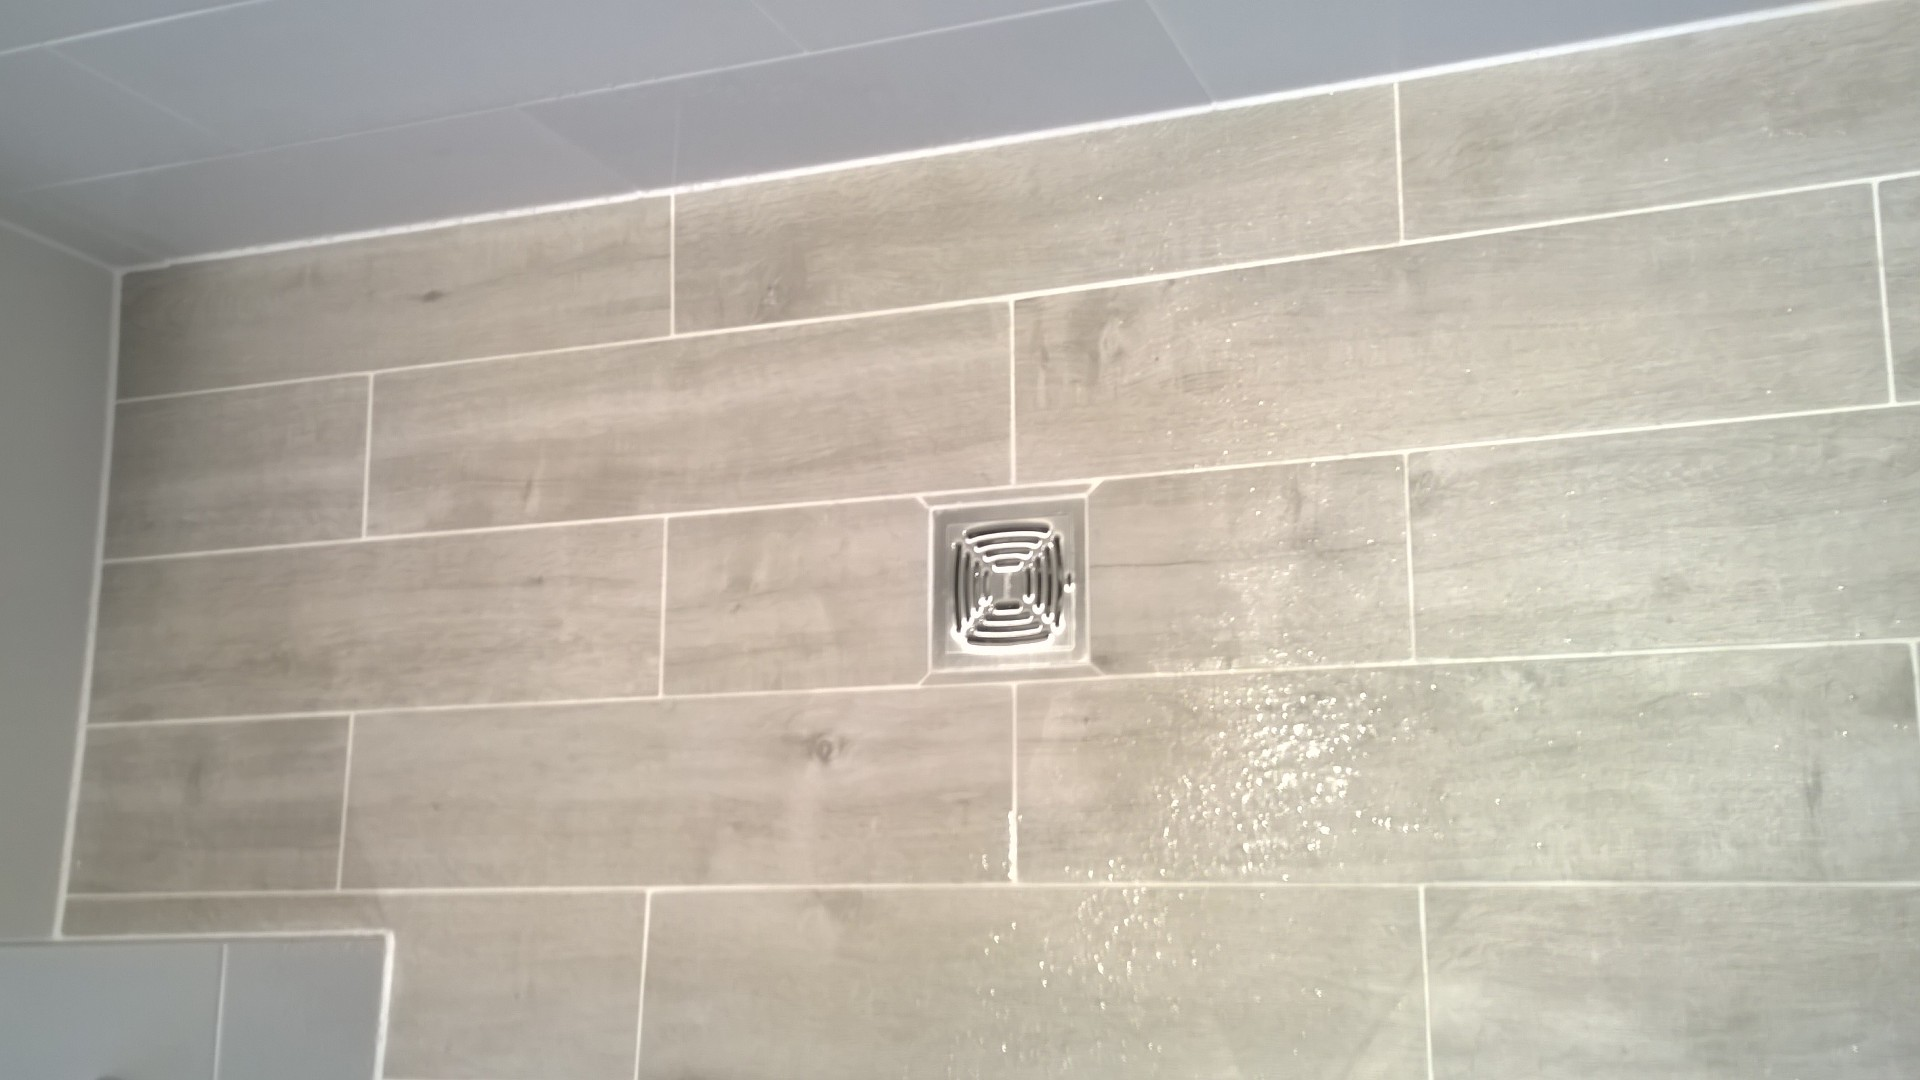 A wetroom floor using an impey aqua dec and wood effect porcelain tiles